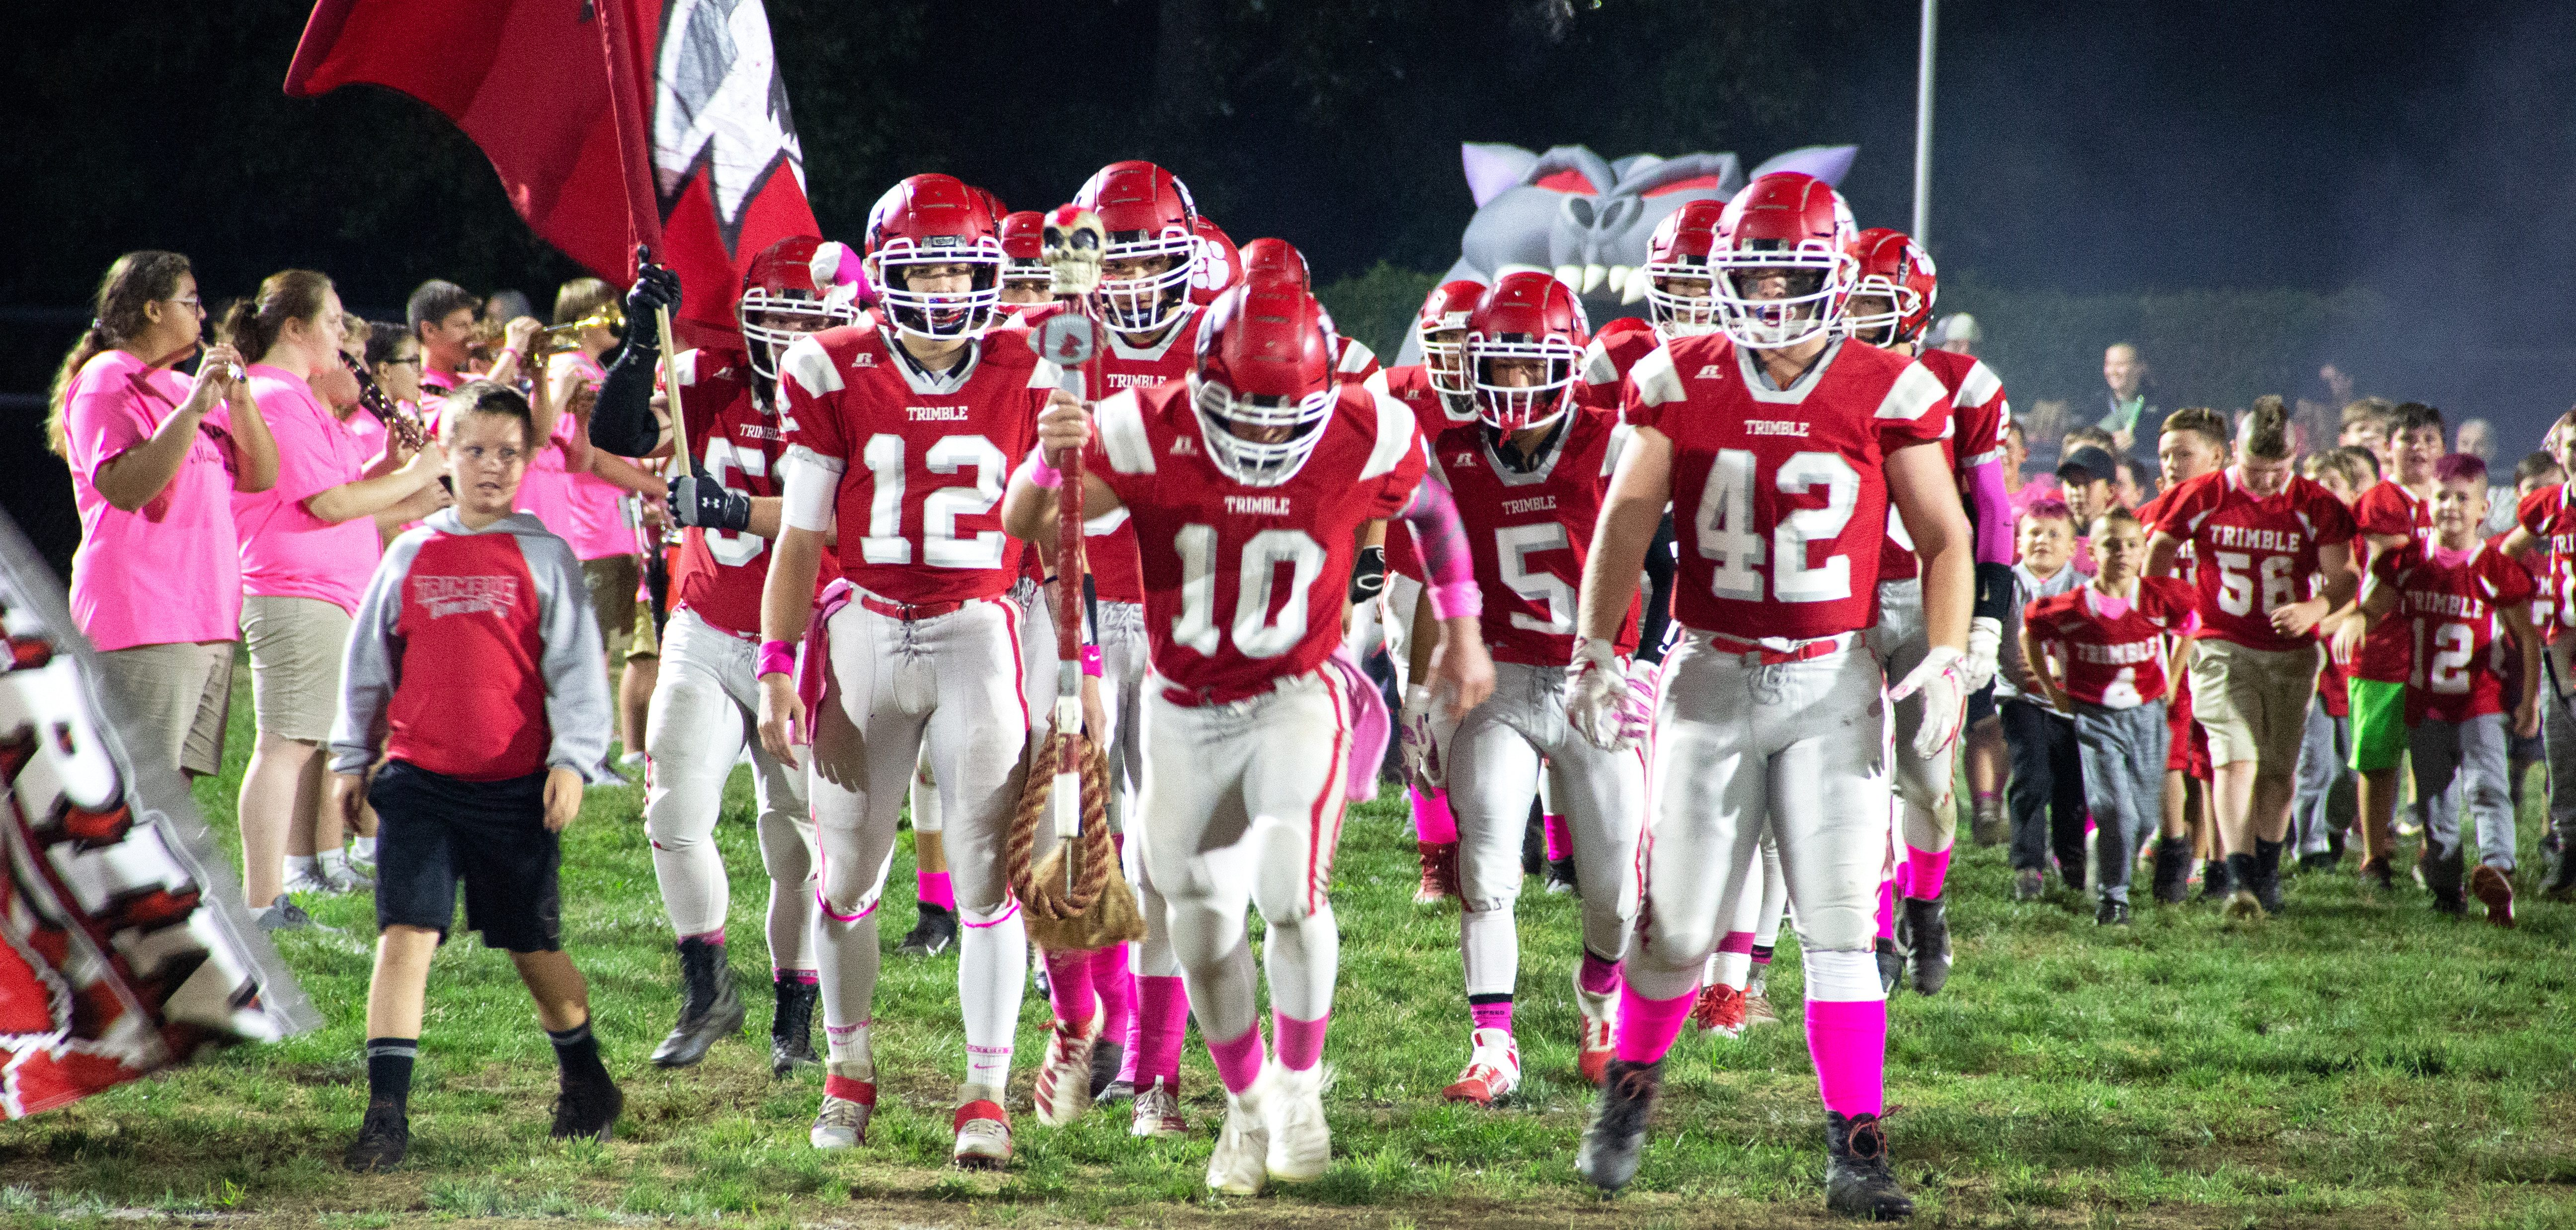 Trimble Tomcats take the field against the Miller Falcons on October 12, 2019